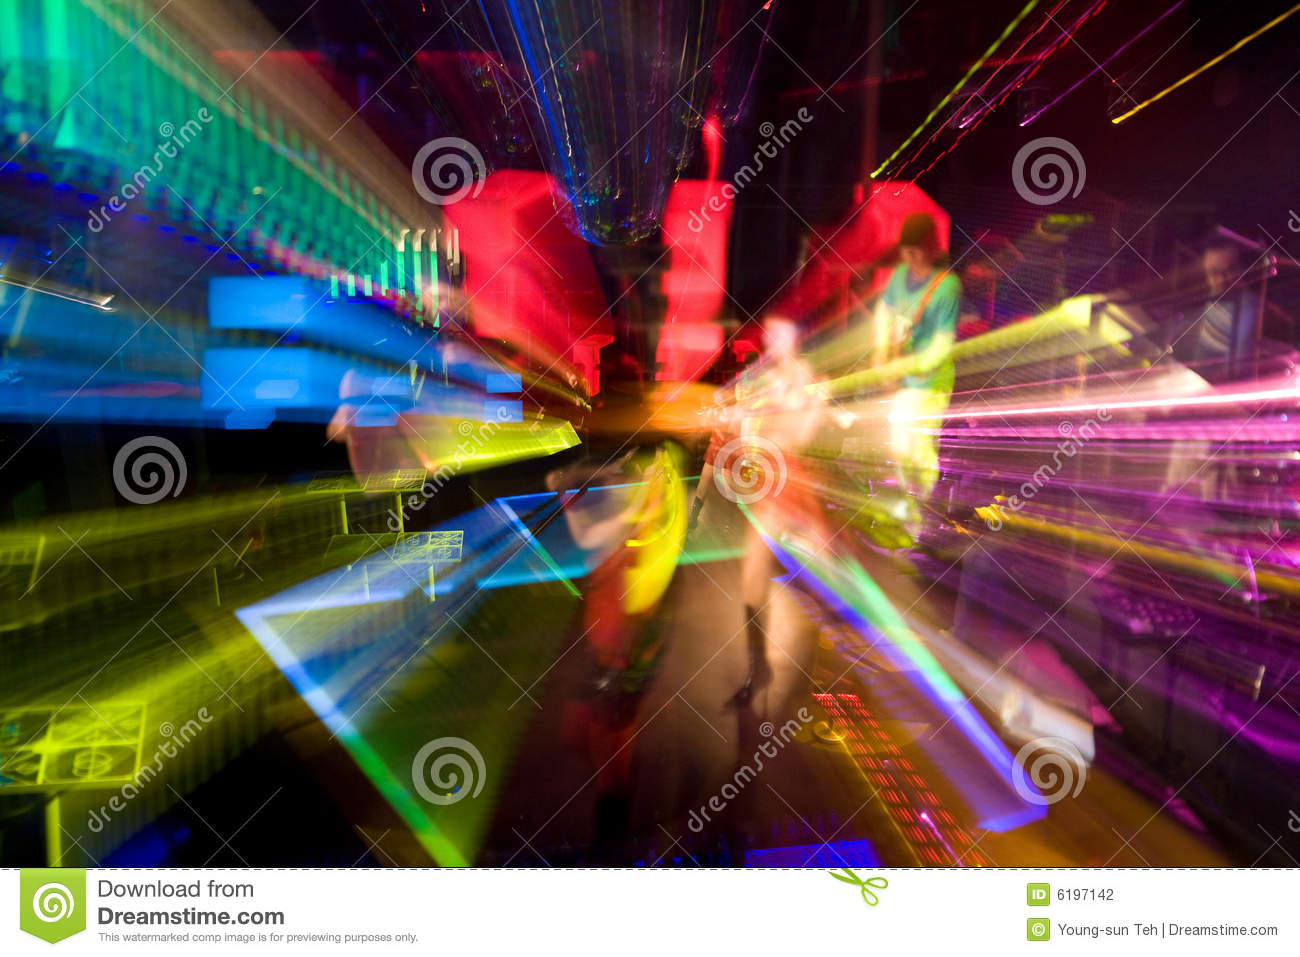 Royalty-Free Stock Photo. Download Zooming Colorful Lighting Effects ... & Zooming Colorful Lighting Effects Stock Illustration - Image: 6197142 azcodes.com